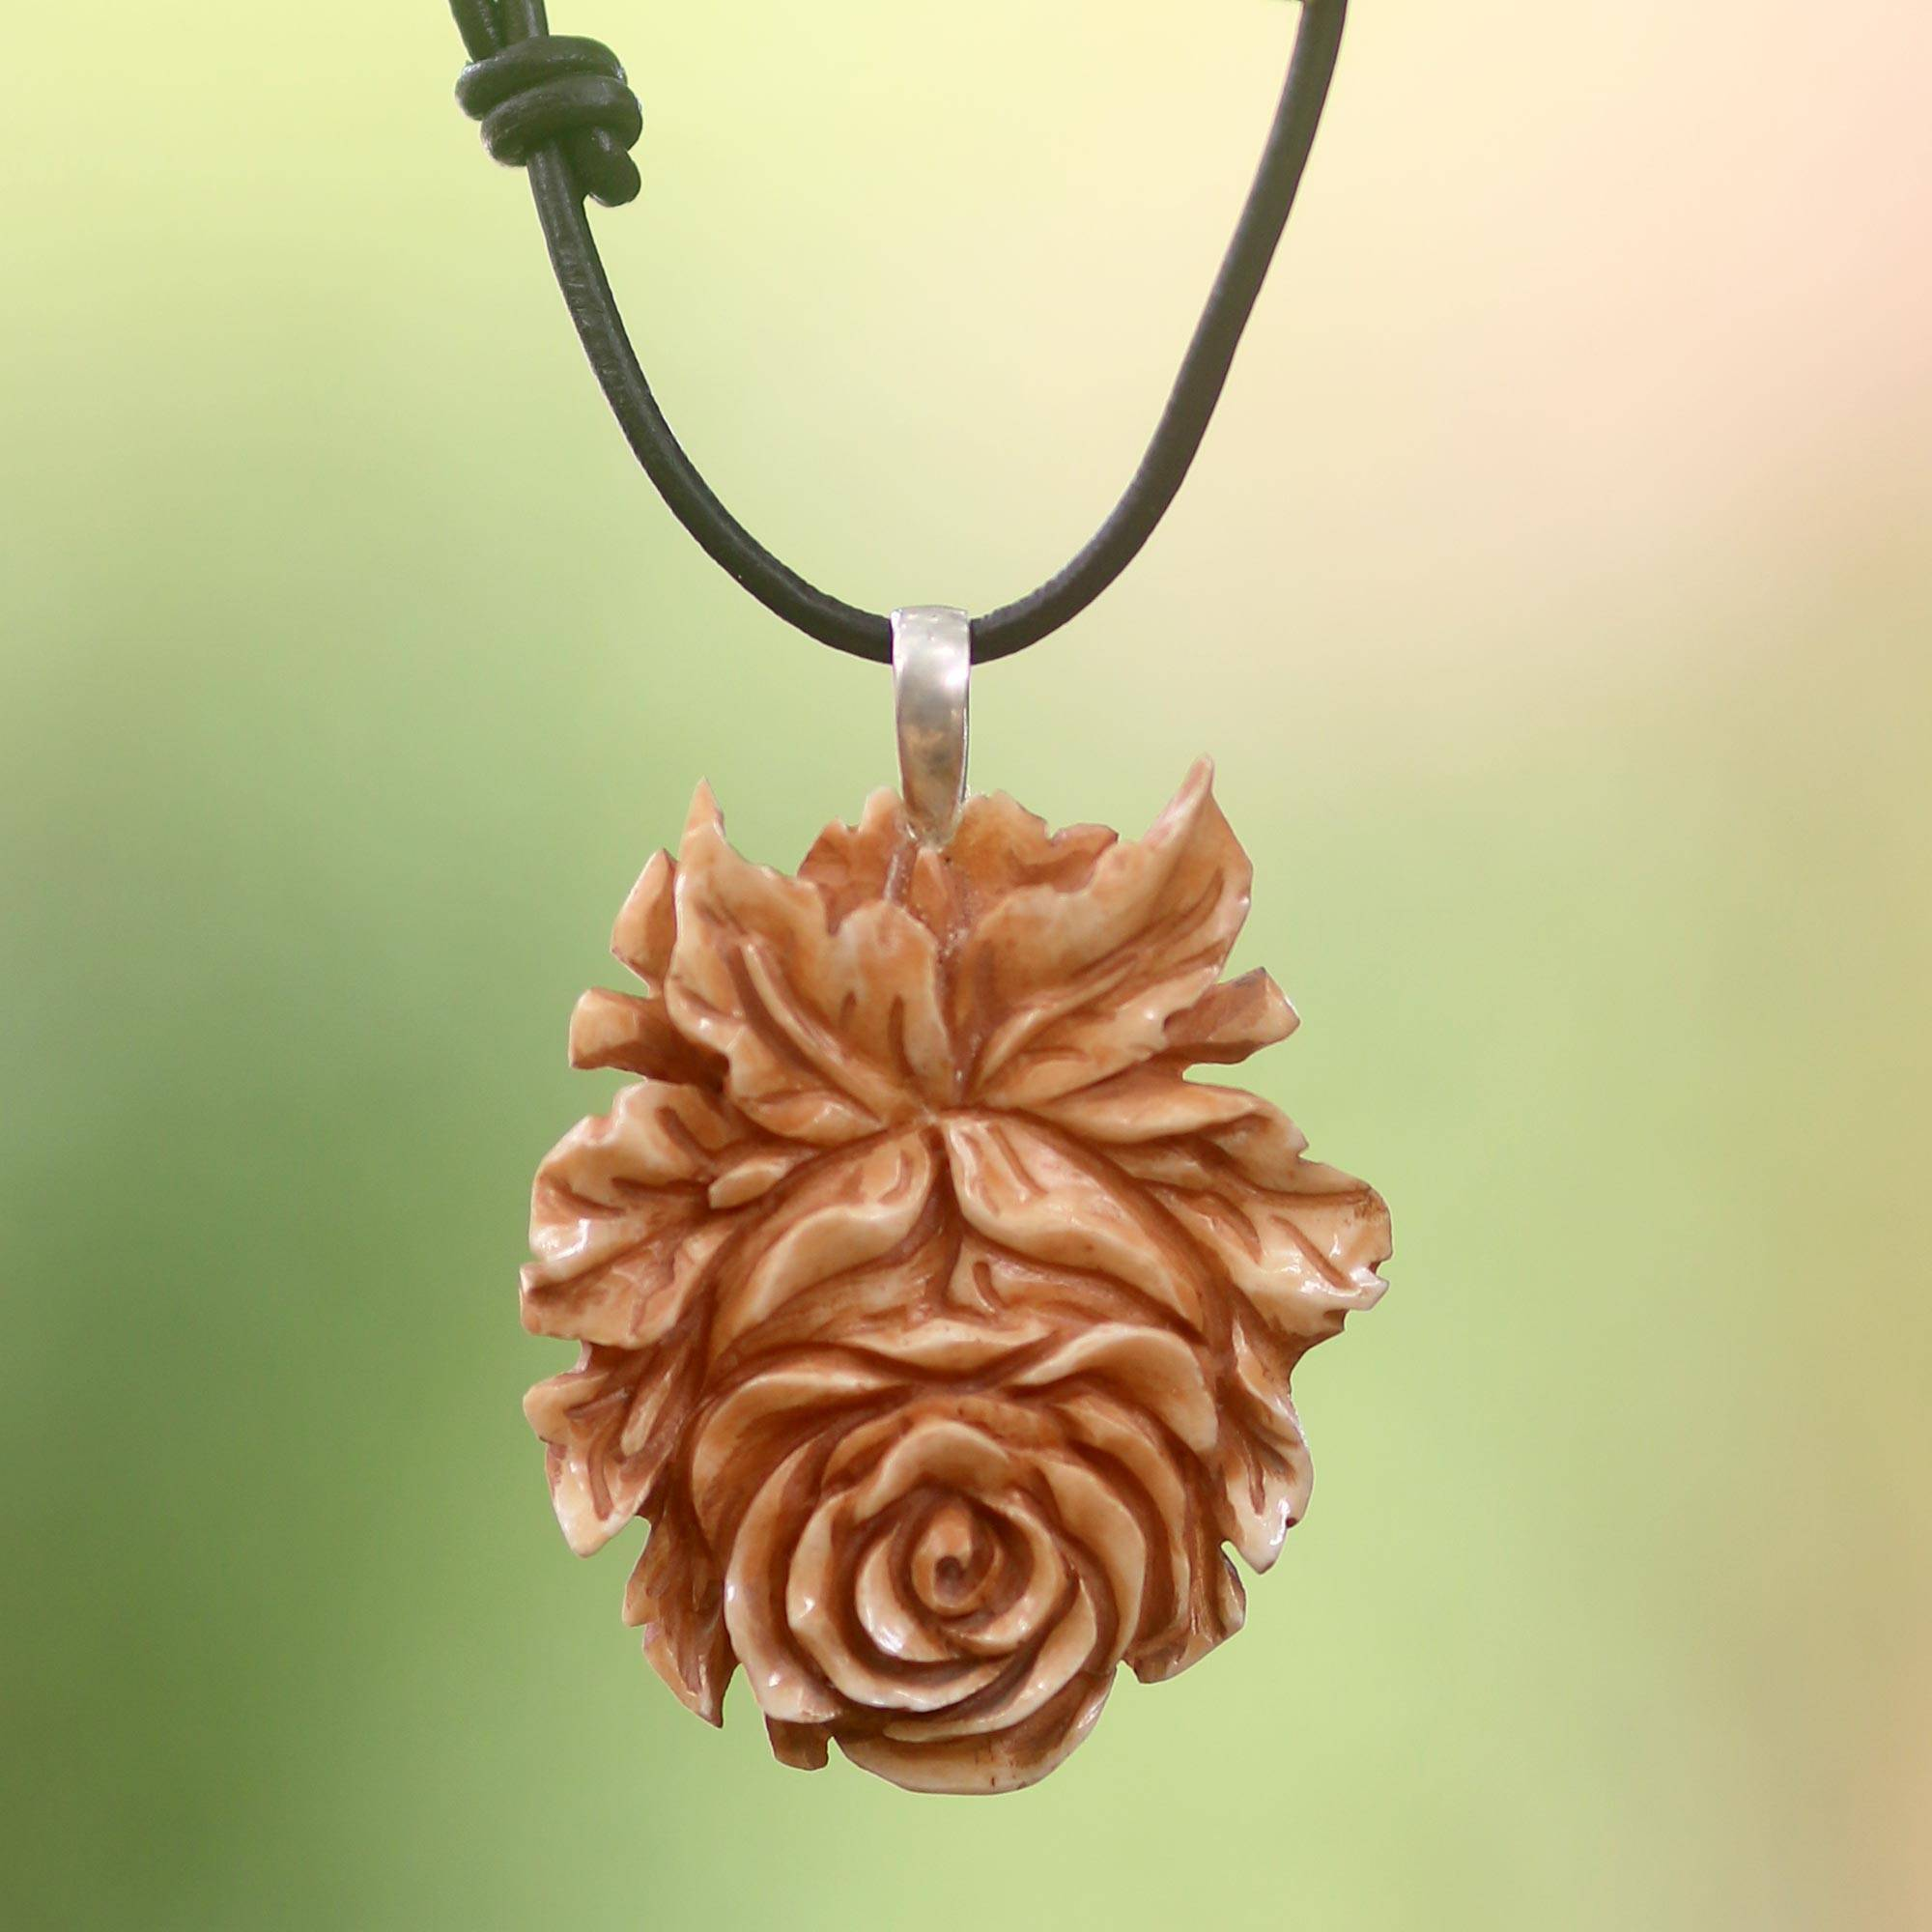 Unicef Uk Market Handmade Floral Cow Bone Pendant On Leather Cord Necklace Brown Rose